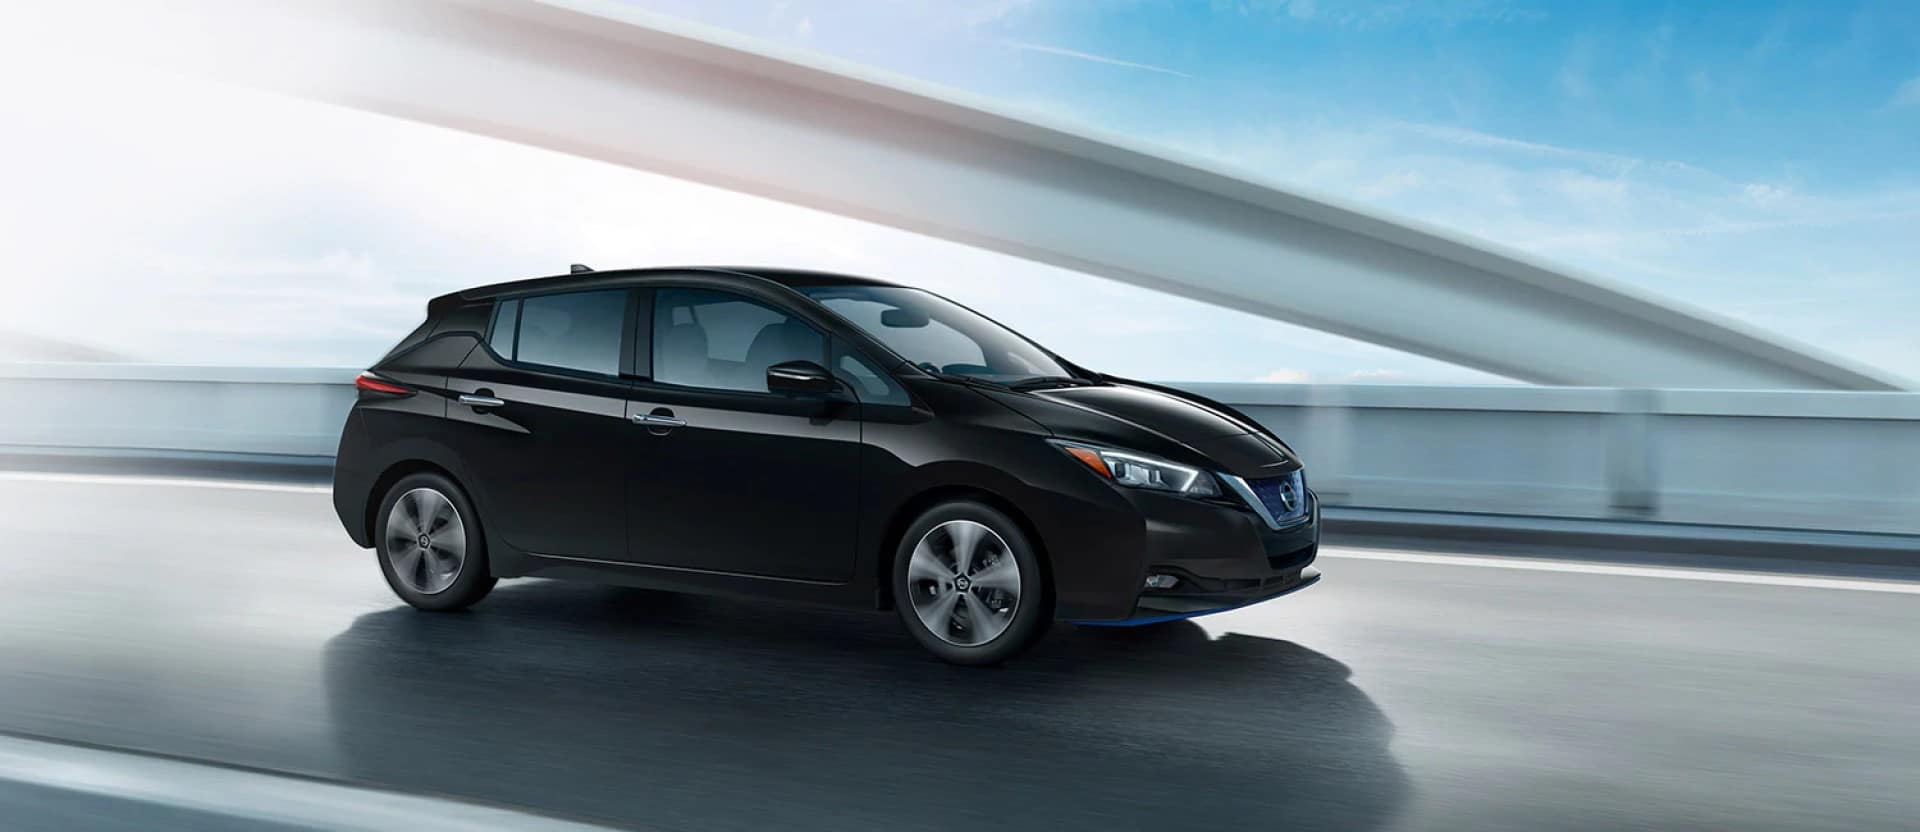 Nissan_LEAF_Driving_In_CIty_Day